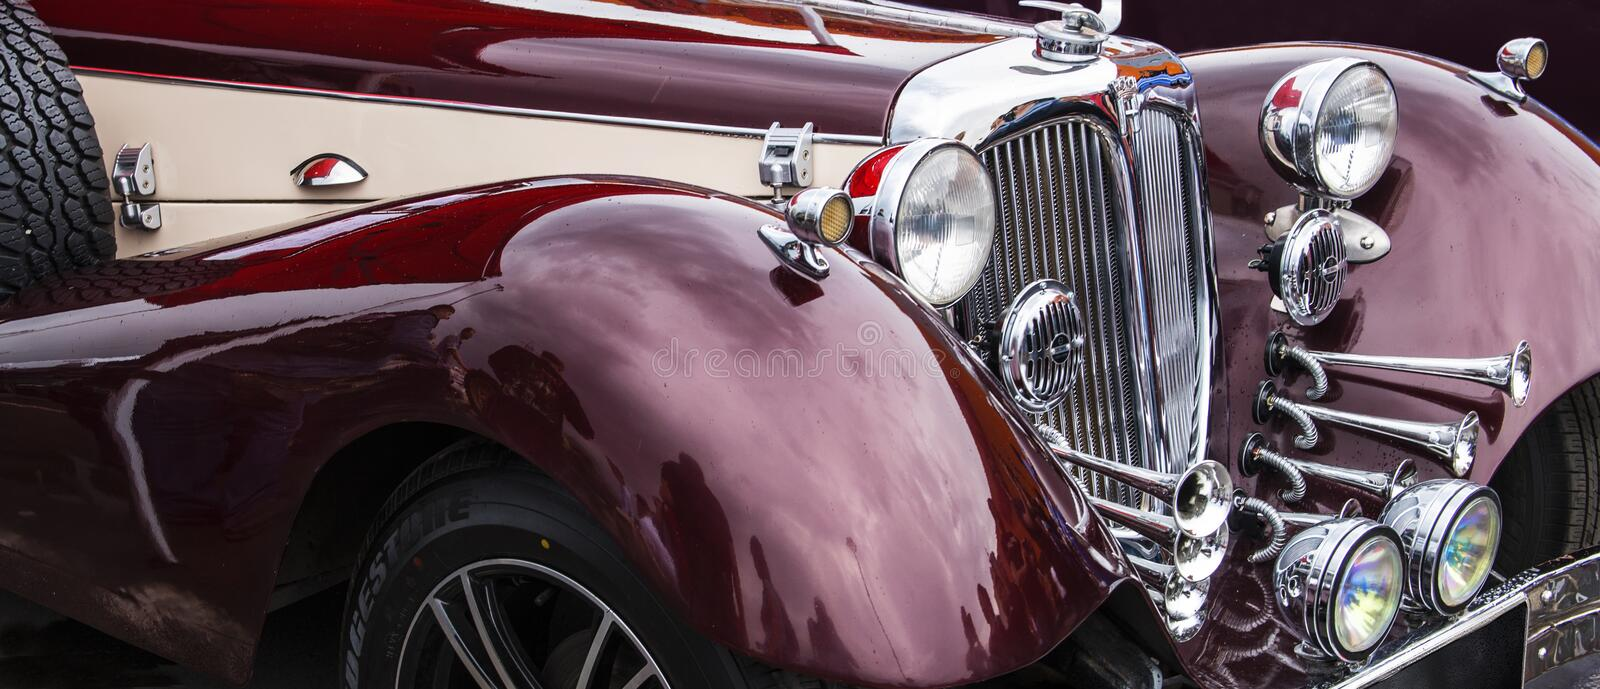 Car HORÐ¡H. 850. 1936-1940 years of production. Russia. Rostov-on-Don. May 25, 2018. International Tuning Festival YugMotorShow. Exhibition platform royalty free stock images